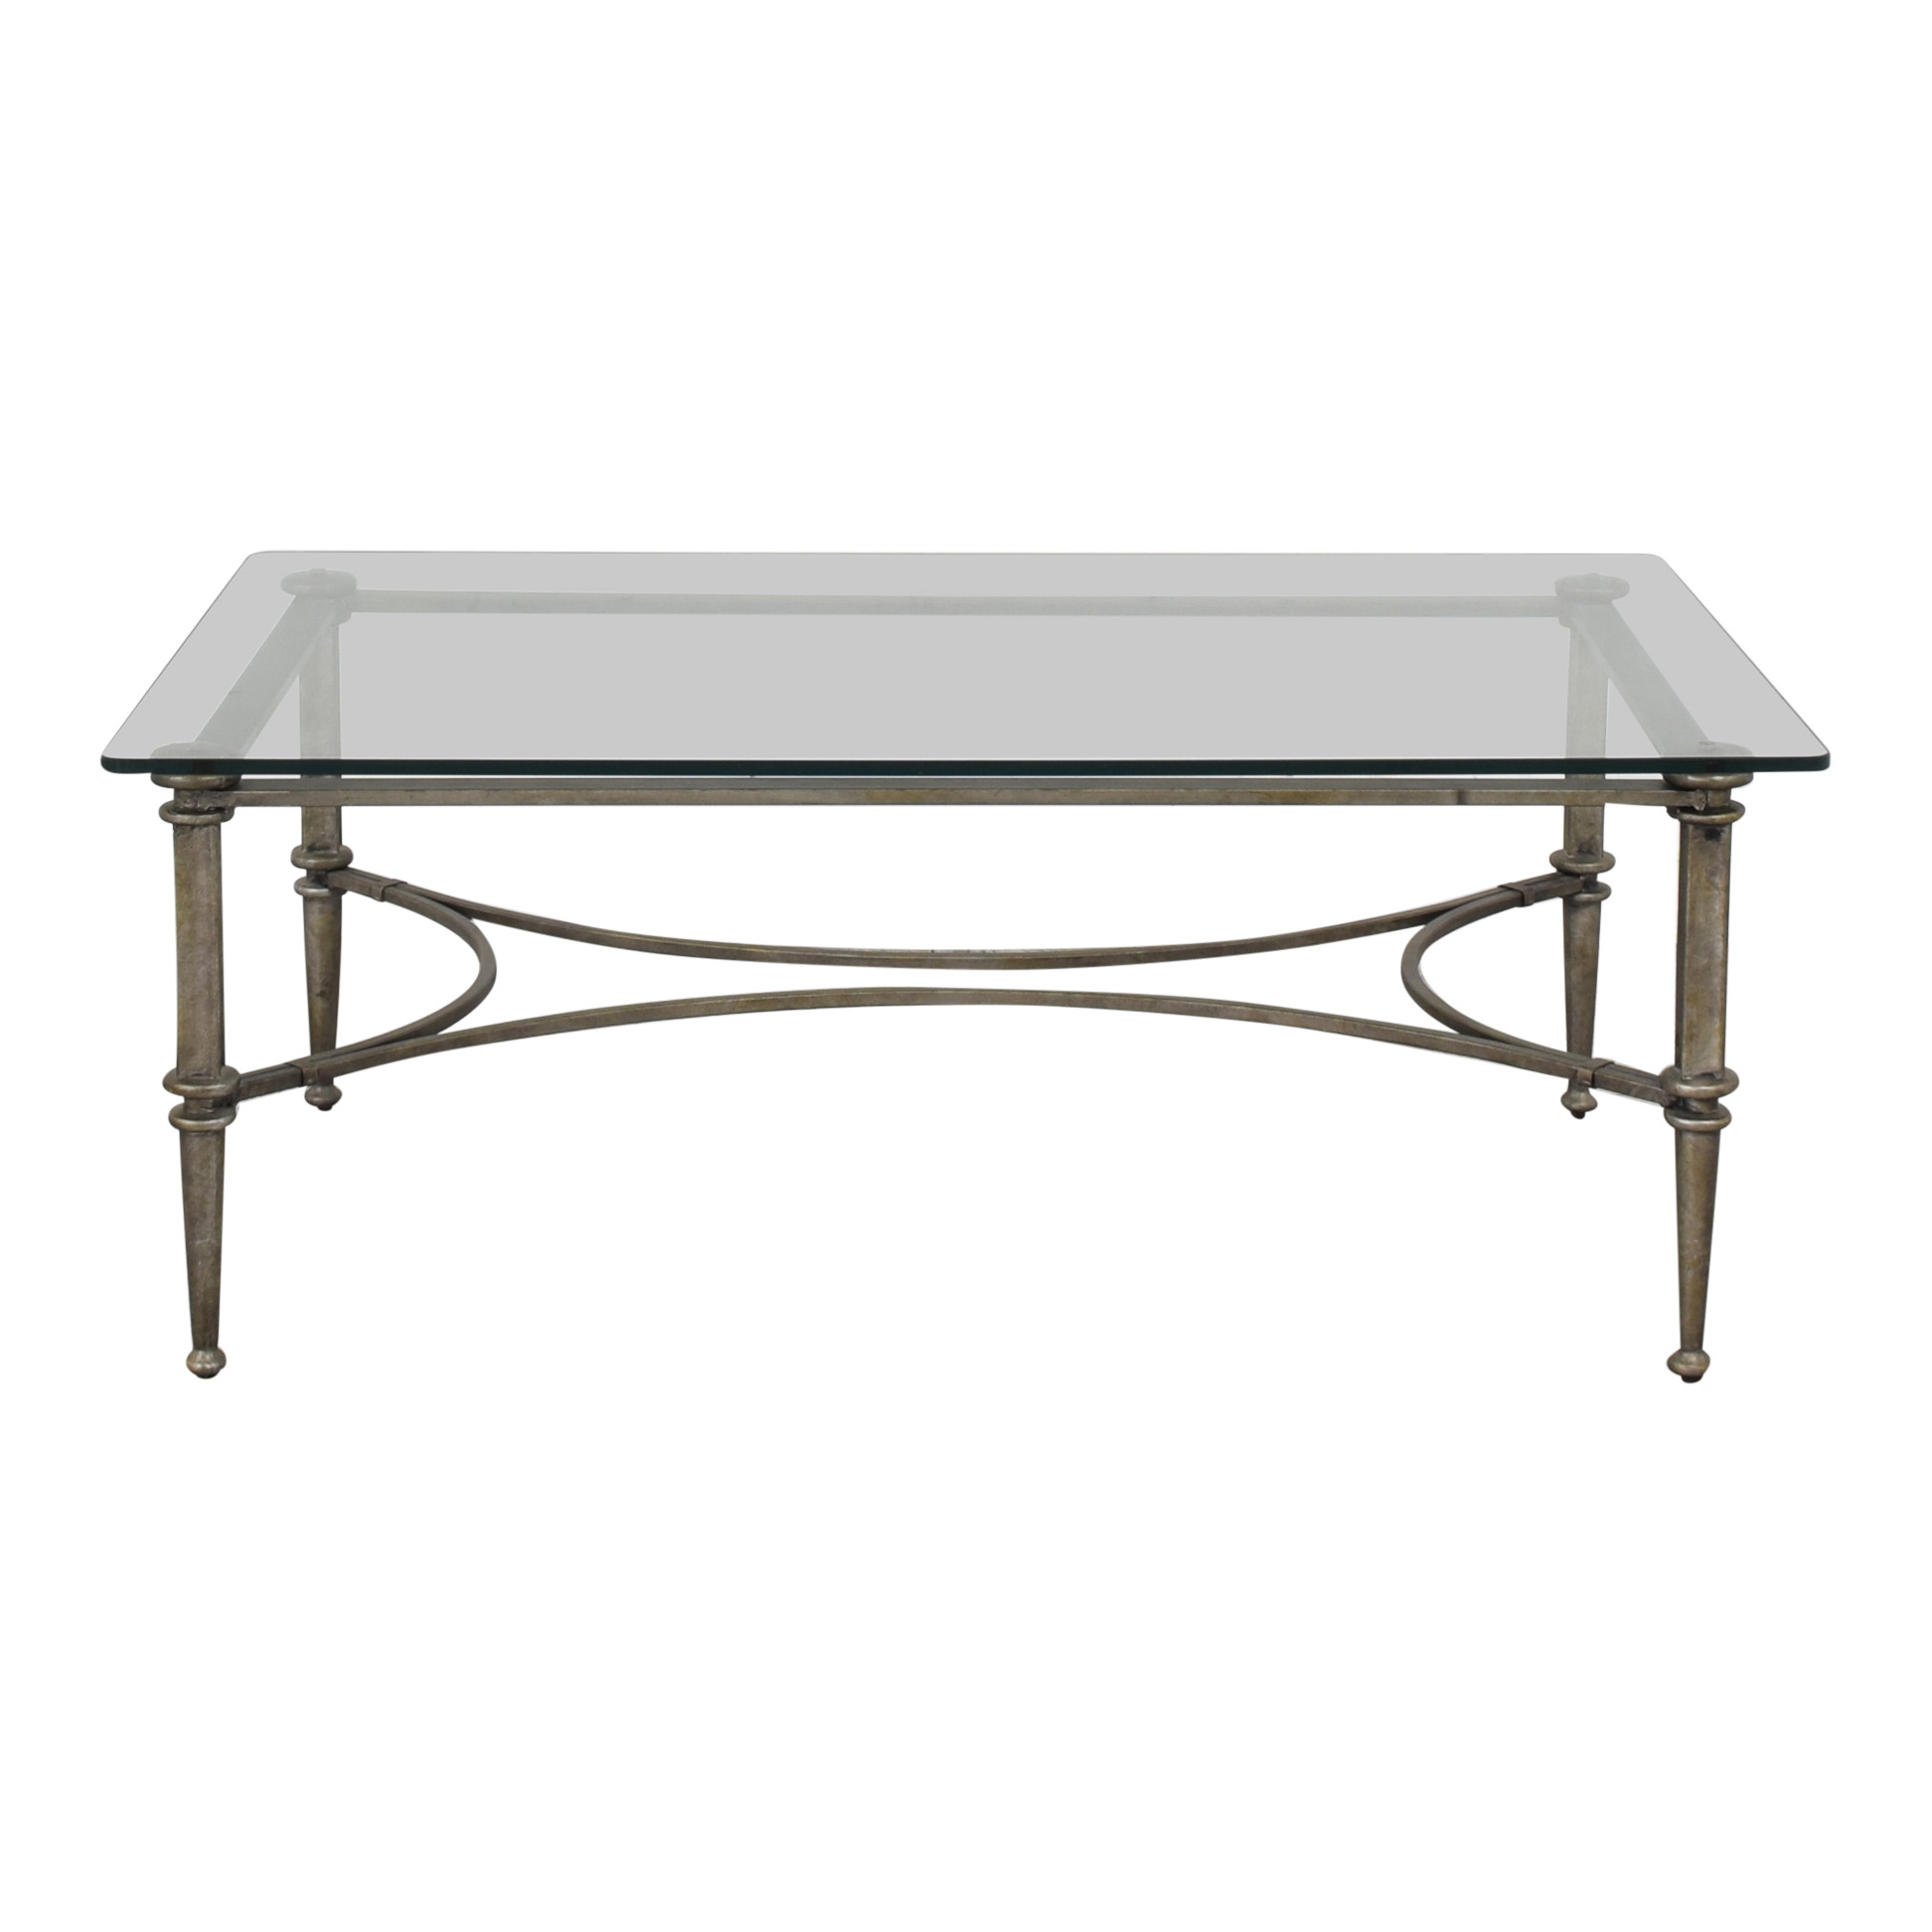 Bloomingdale's Glass Coffee Table / Tables